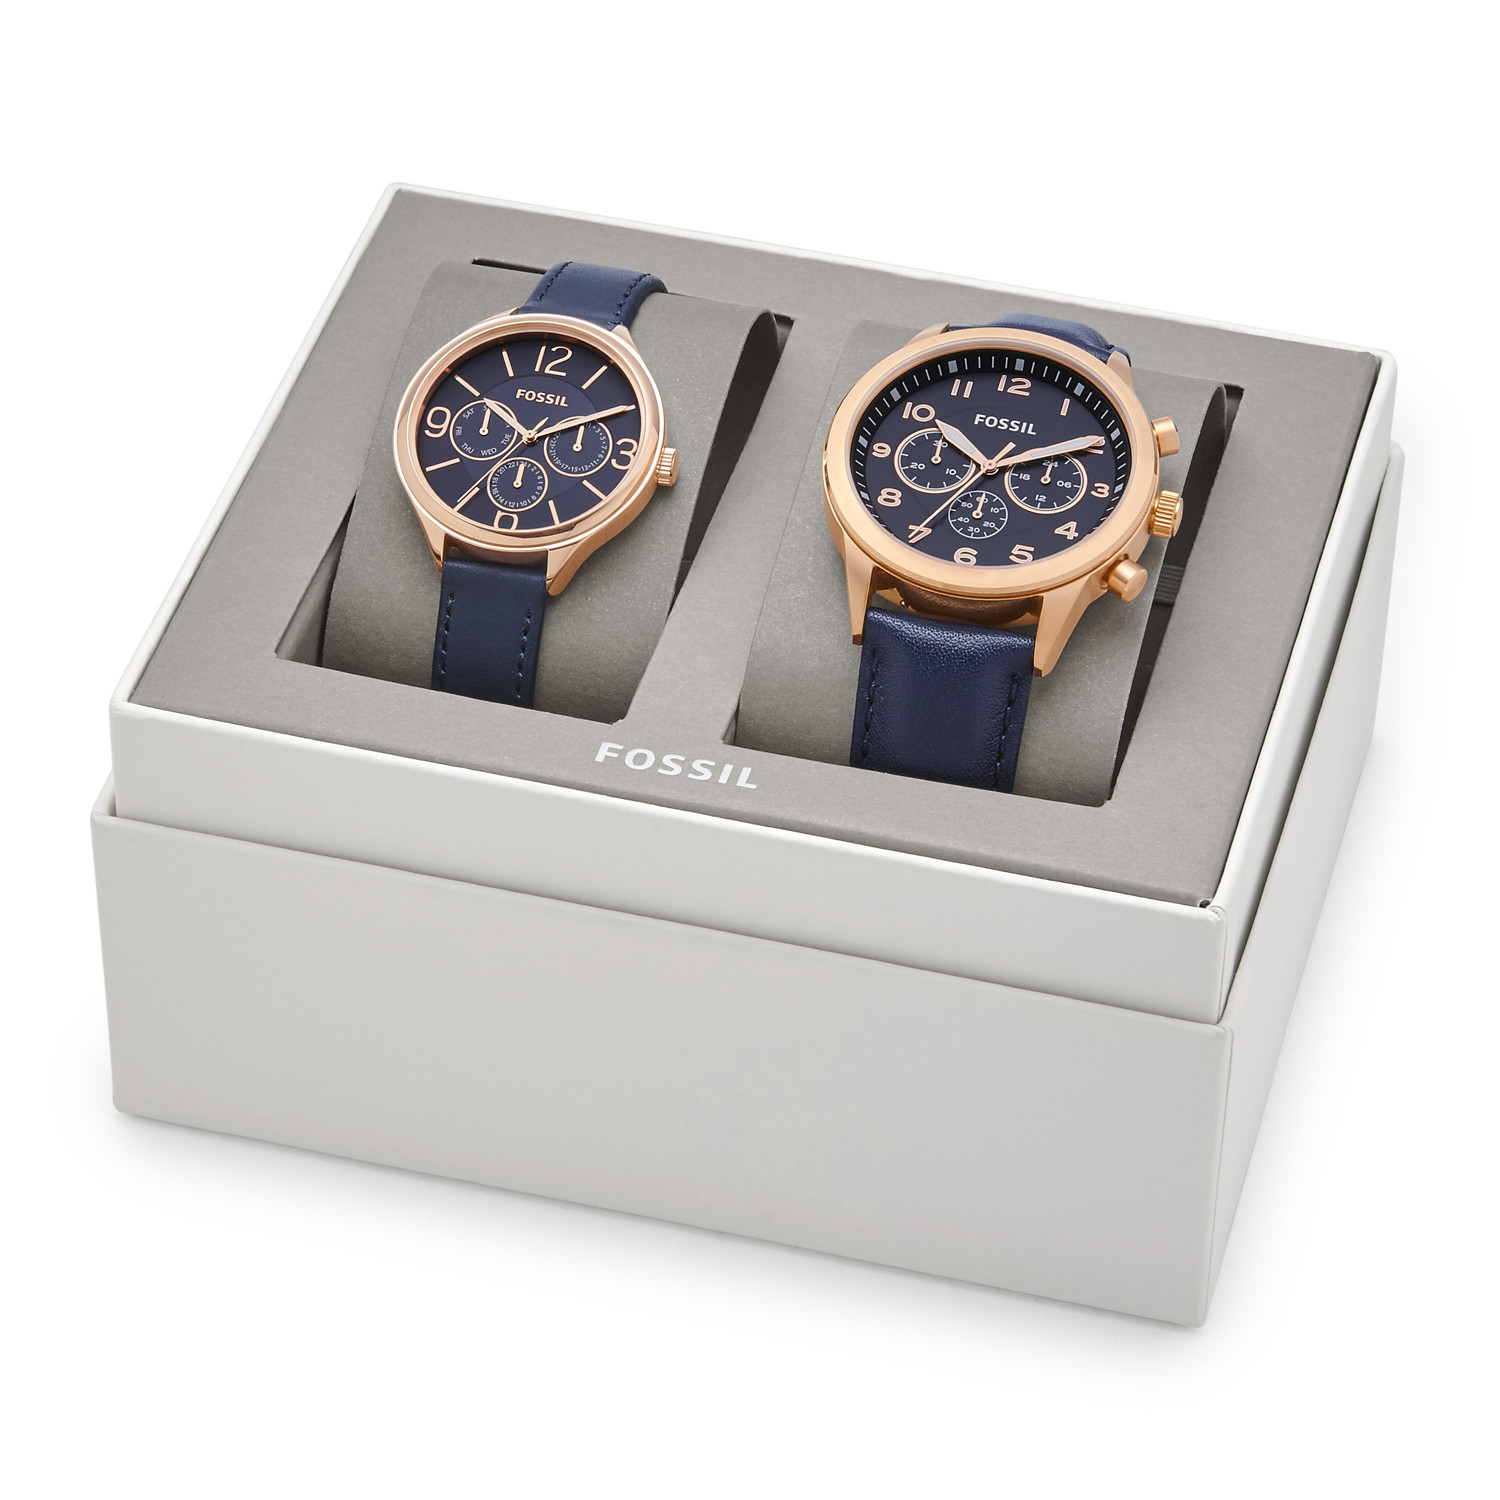 0c1cac75c0d7 His Chronograph and Her Multifunction Navy Leather Watch Gift Set ...